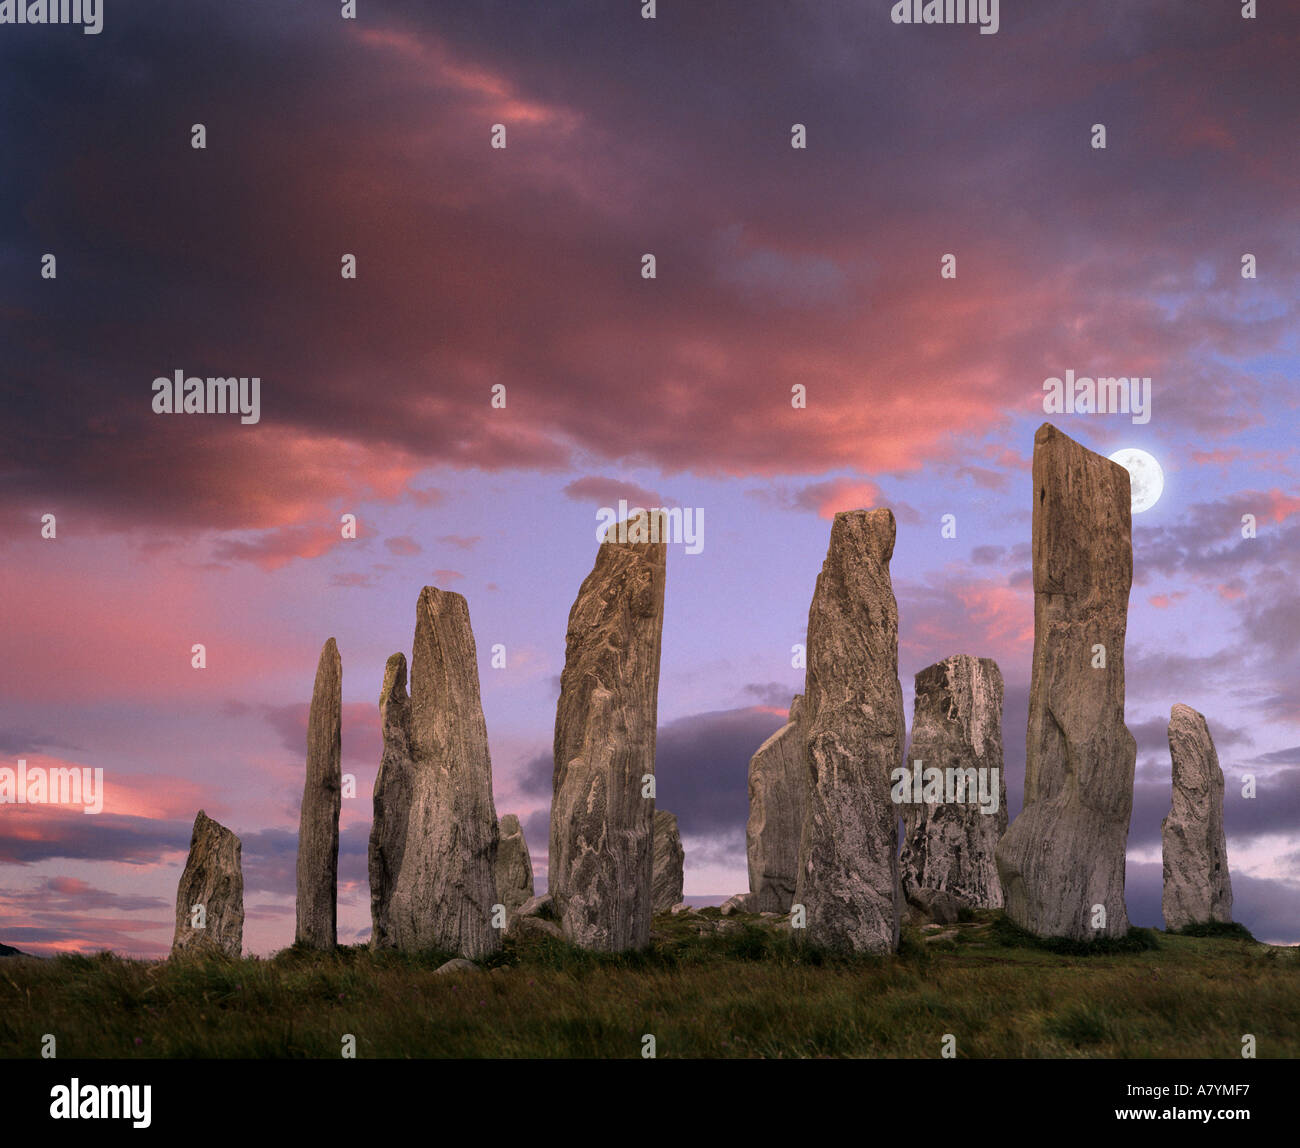 GB - OUTER HEBRIDES: Callanish Standing Stones on the Island of Lewis - Stock Image